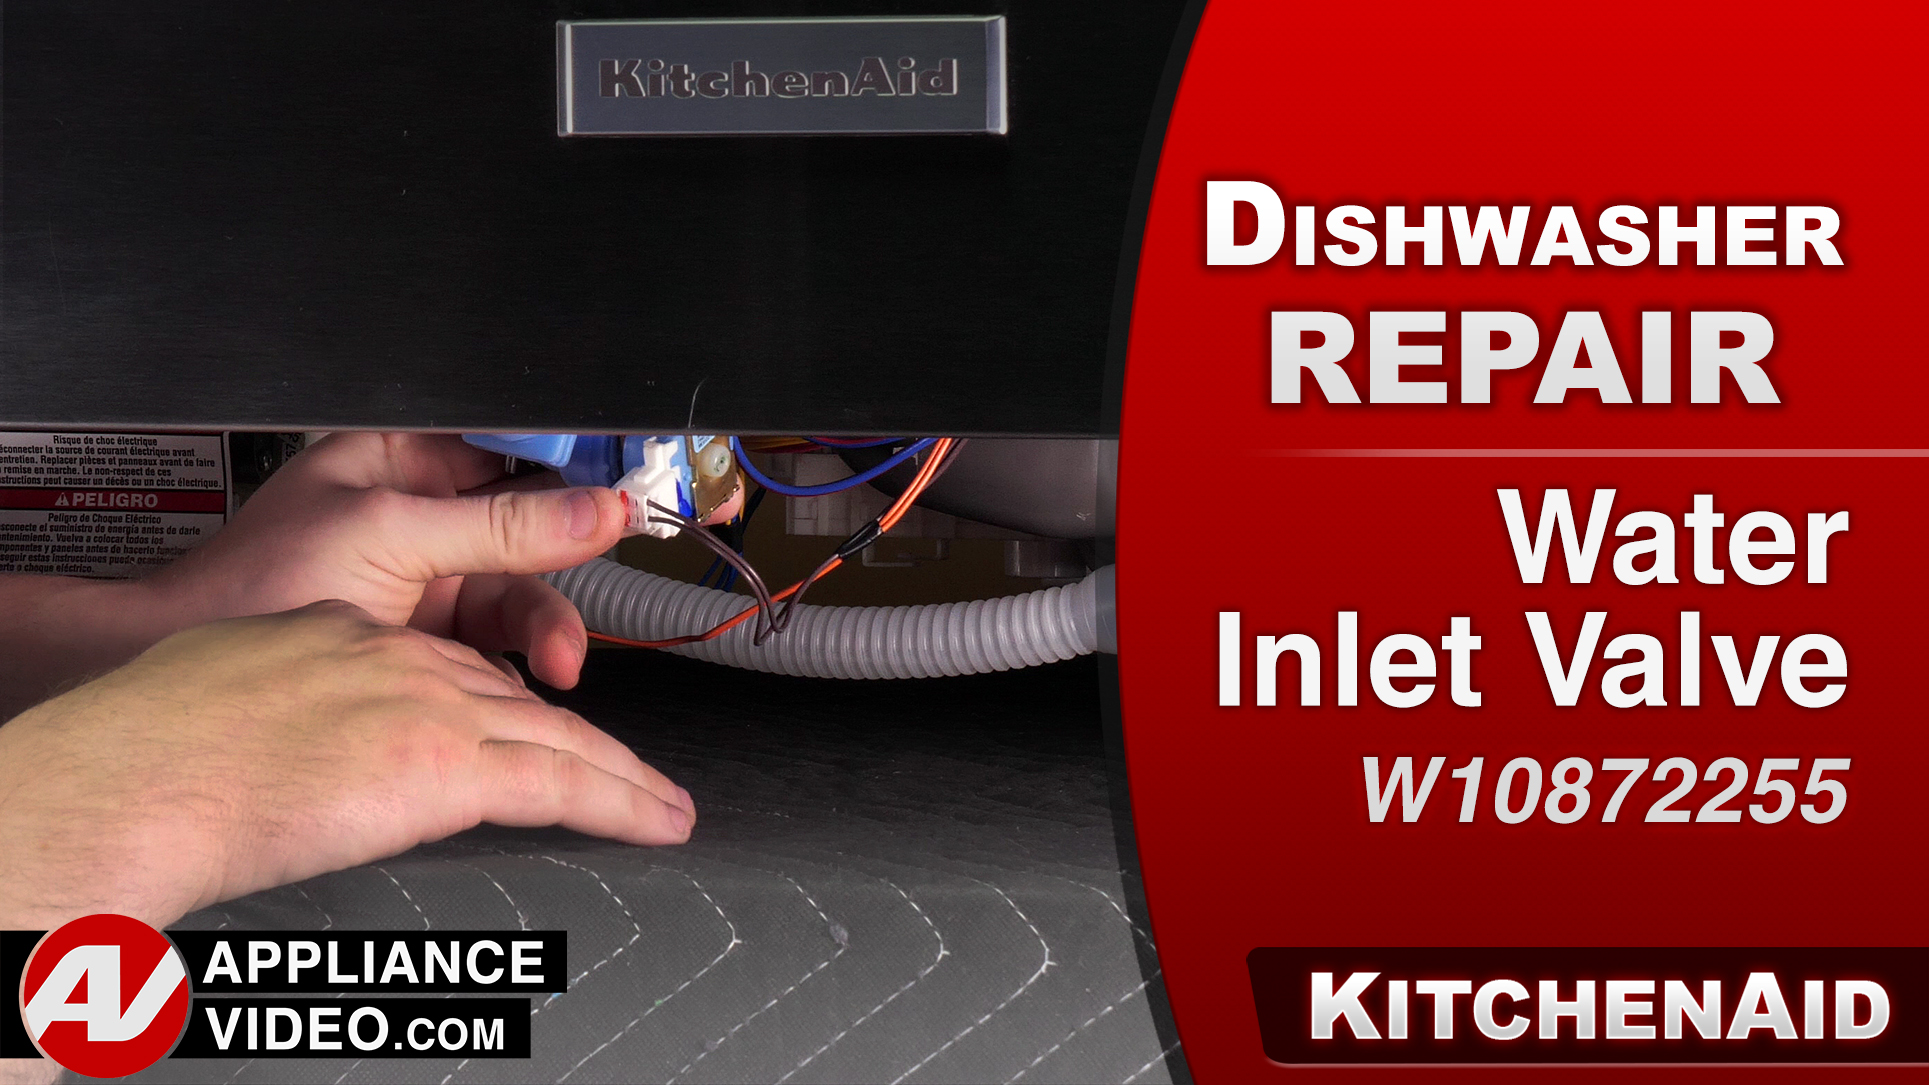 KitchenAid KDTM354ESS3 Dishwasher – No water coming into the unit – Water Inlet Valve